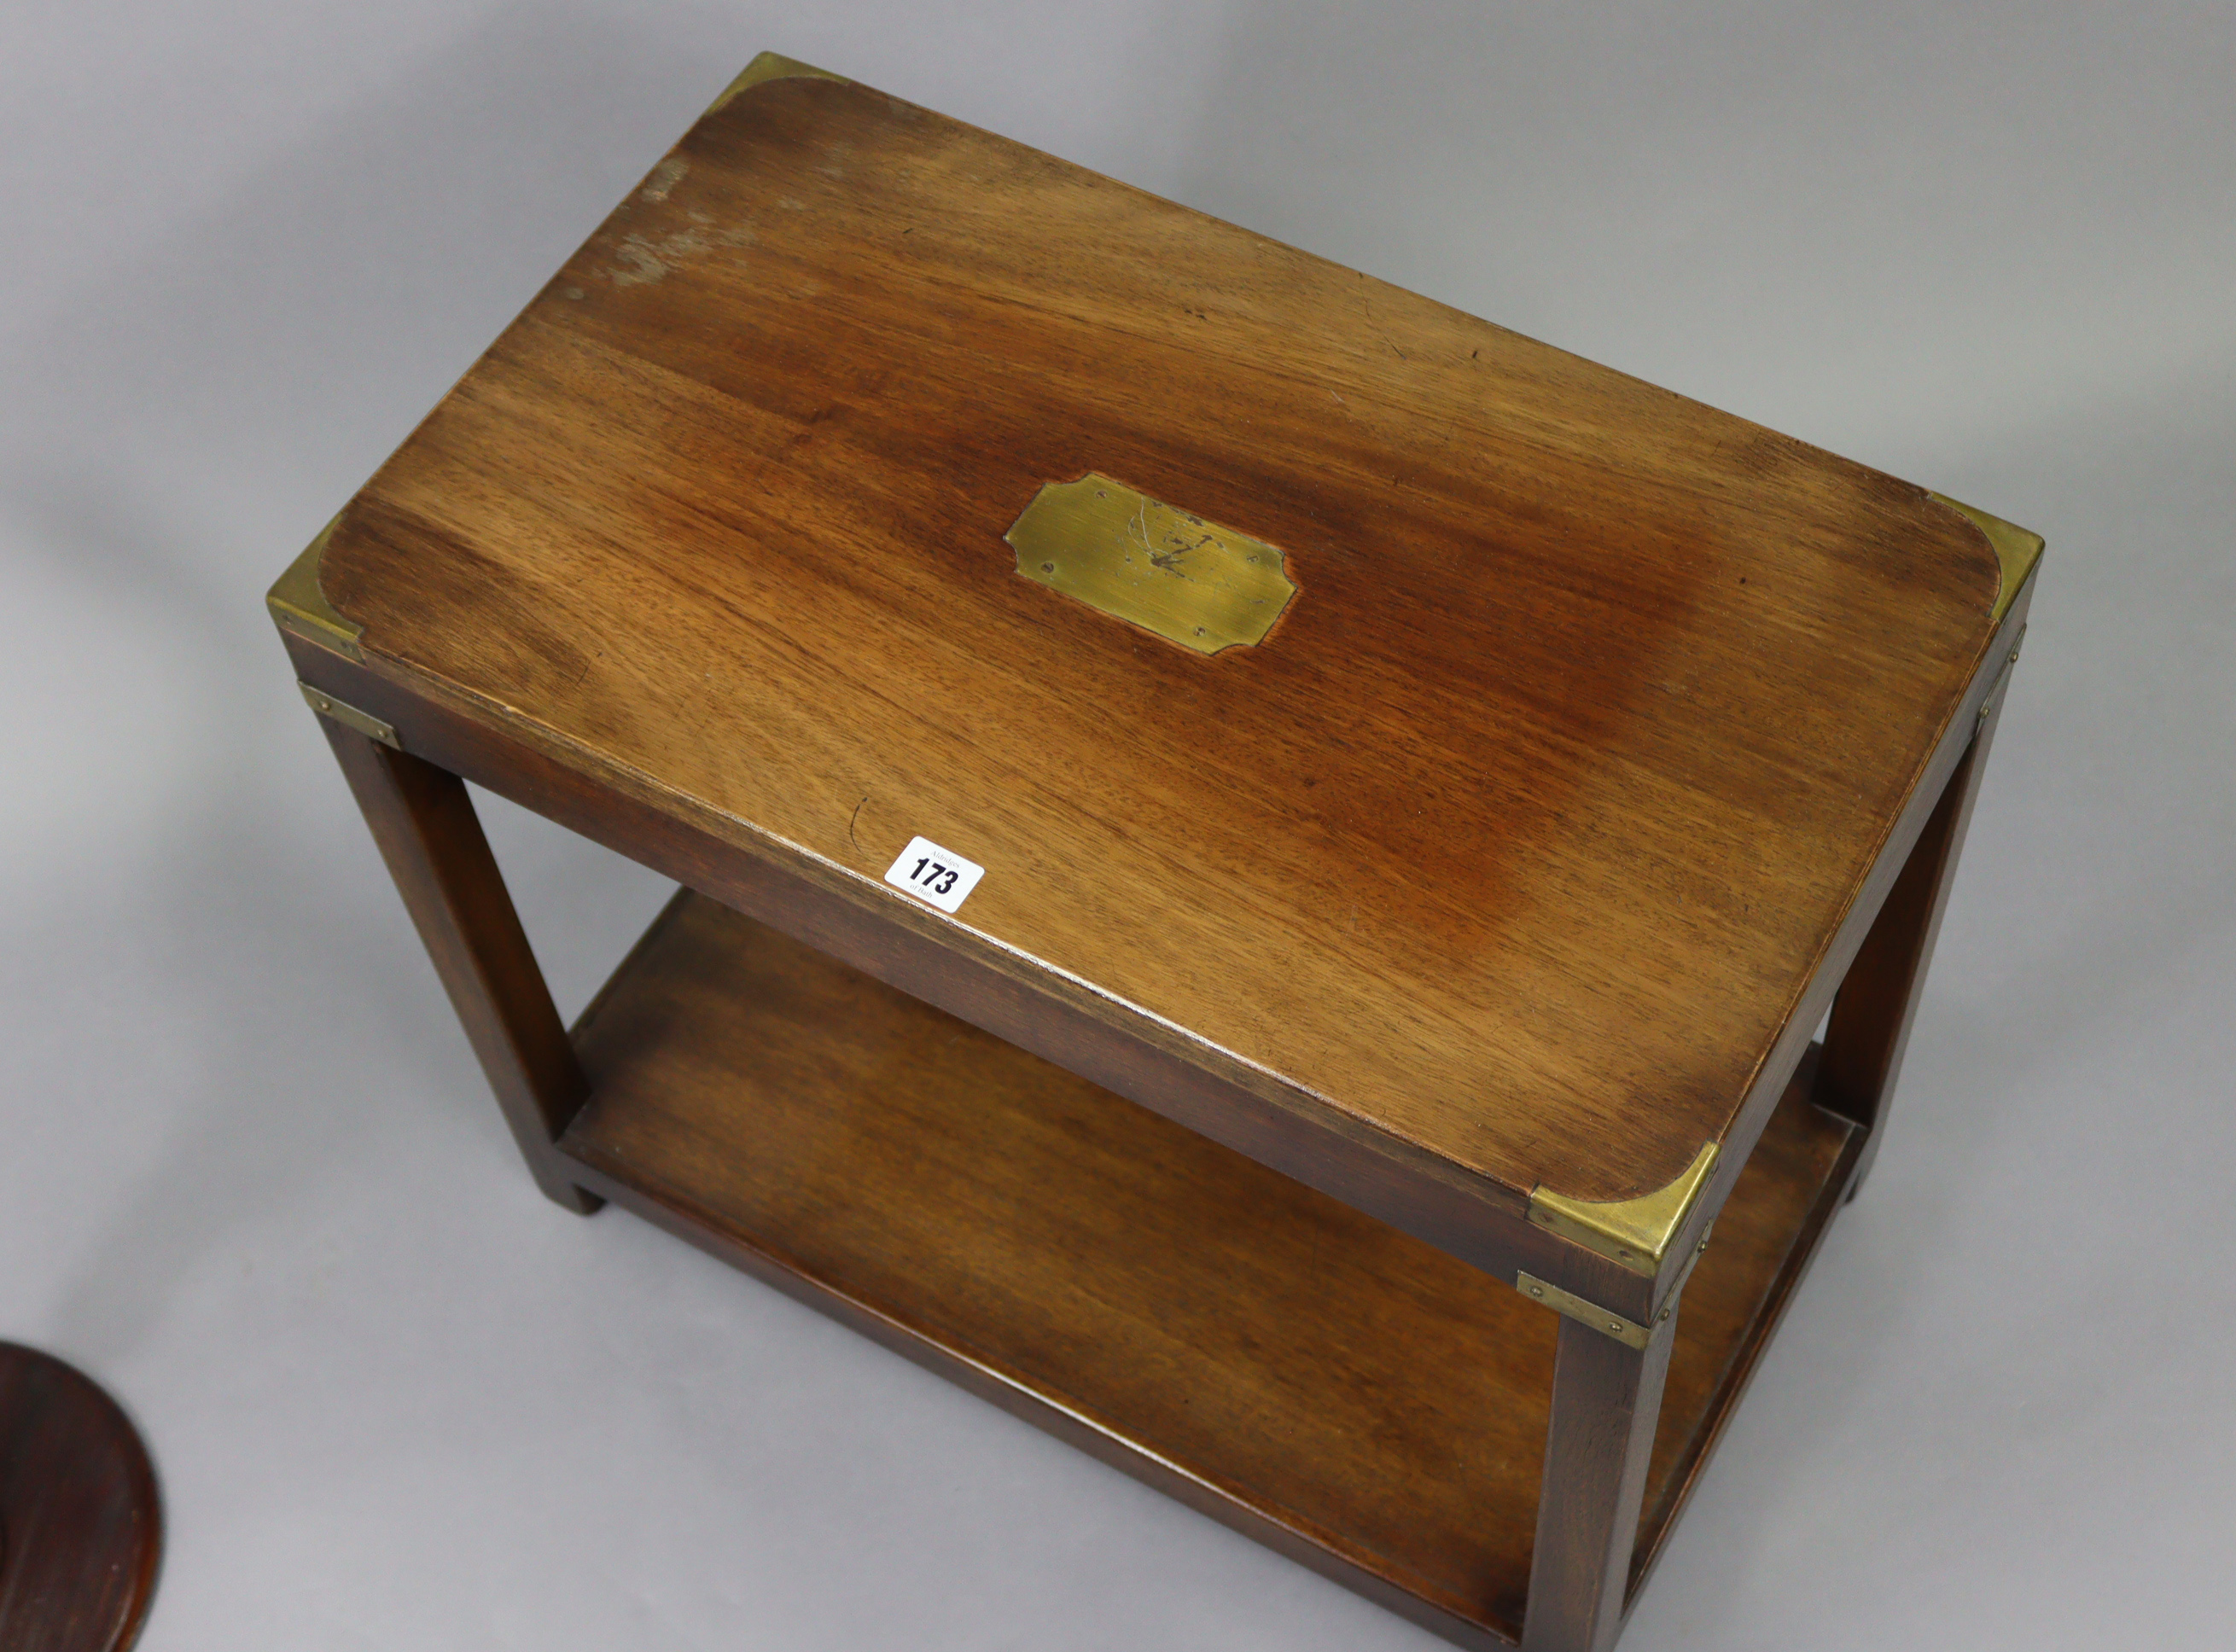 A reproduction brass-mounted mahogany campaign-style rectangular two tier coffee table on square - Image 2 of 6